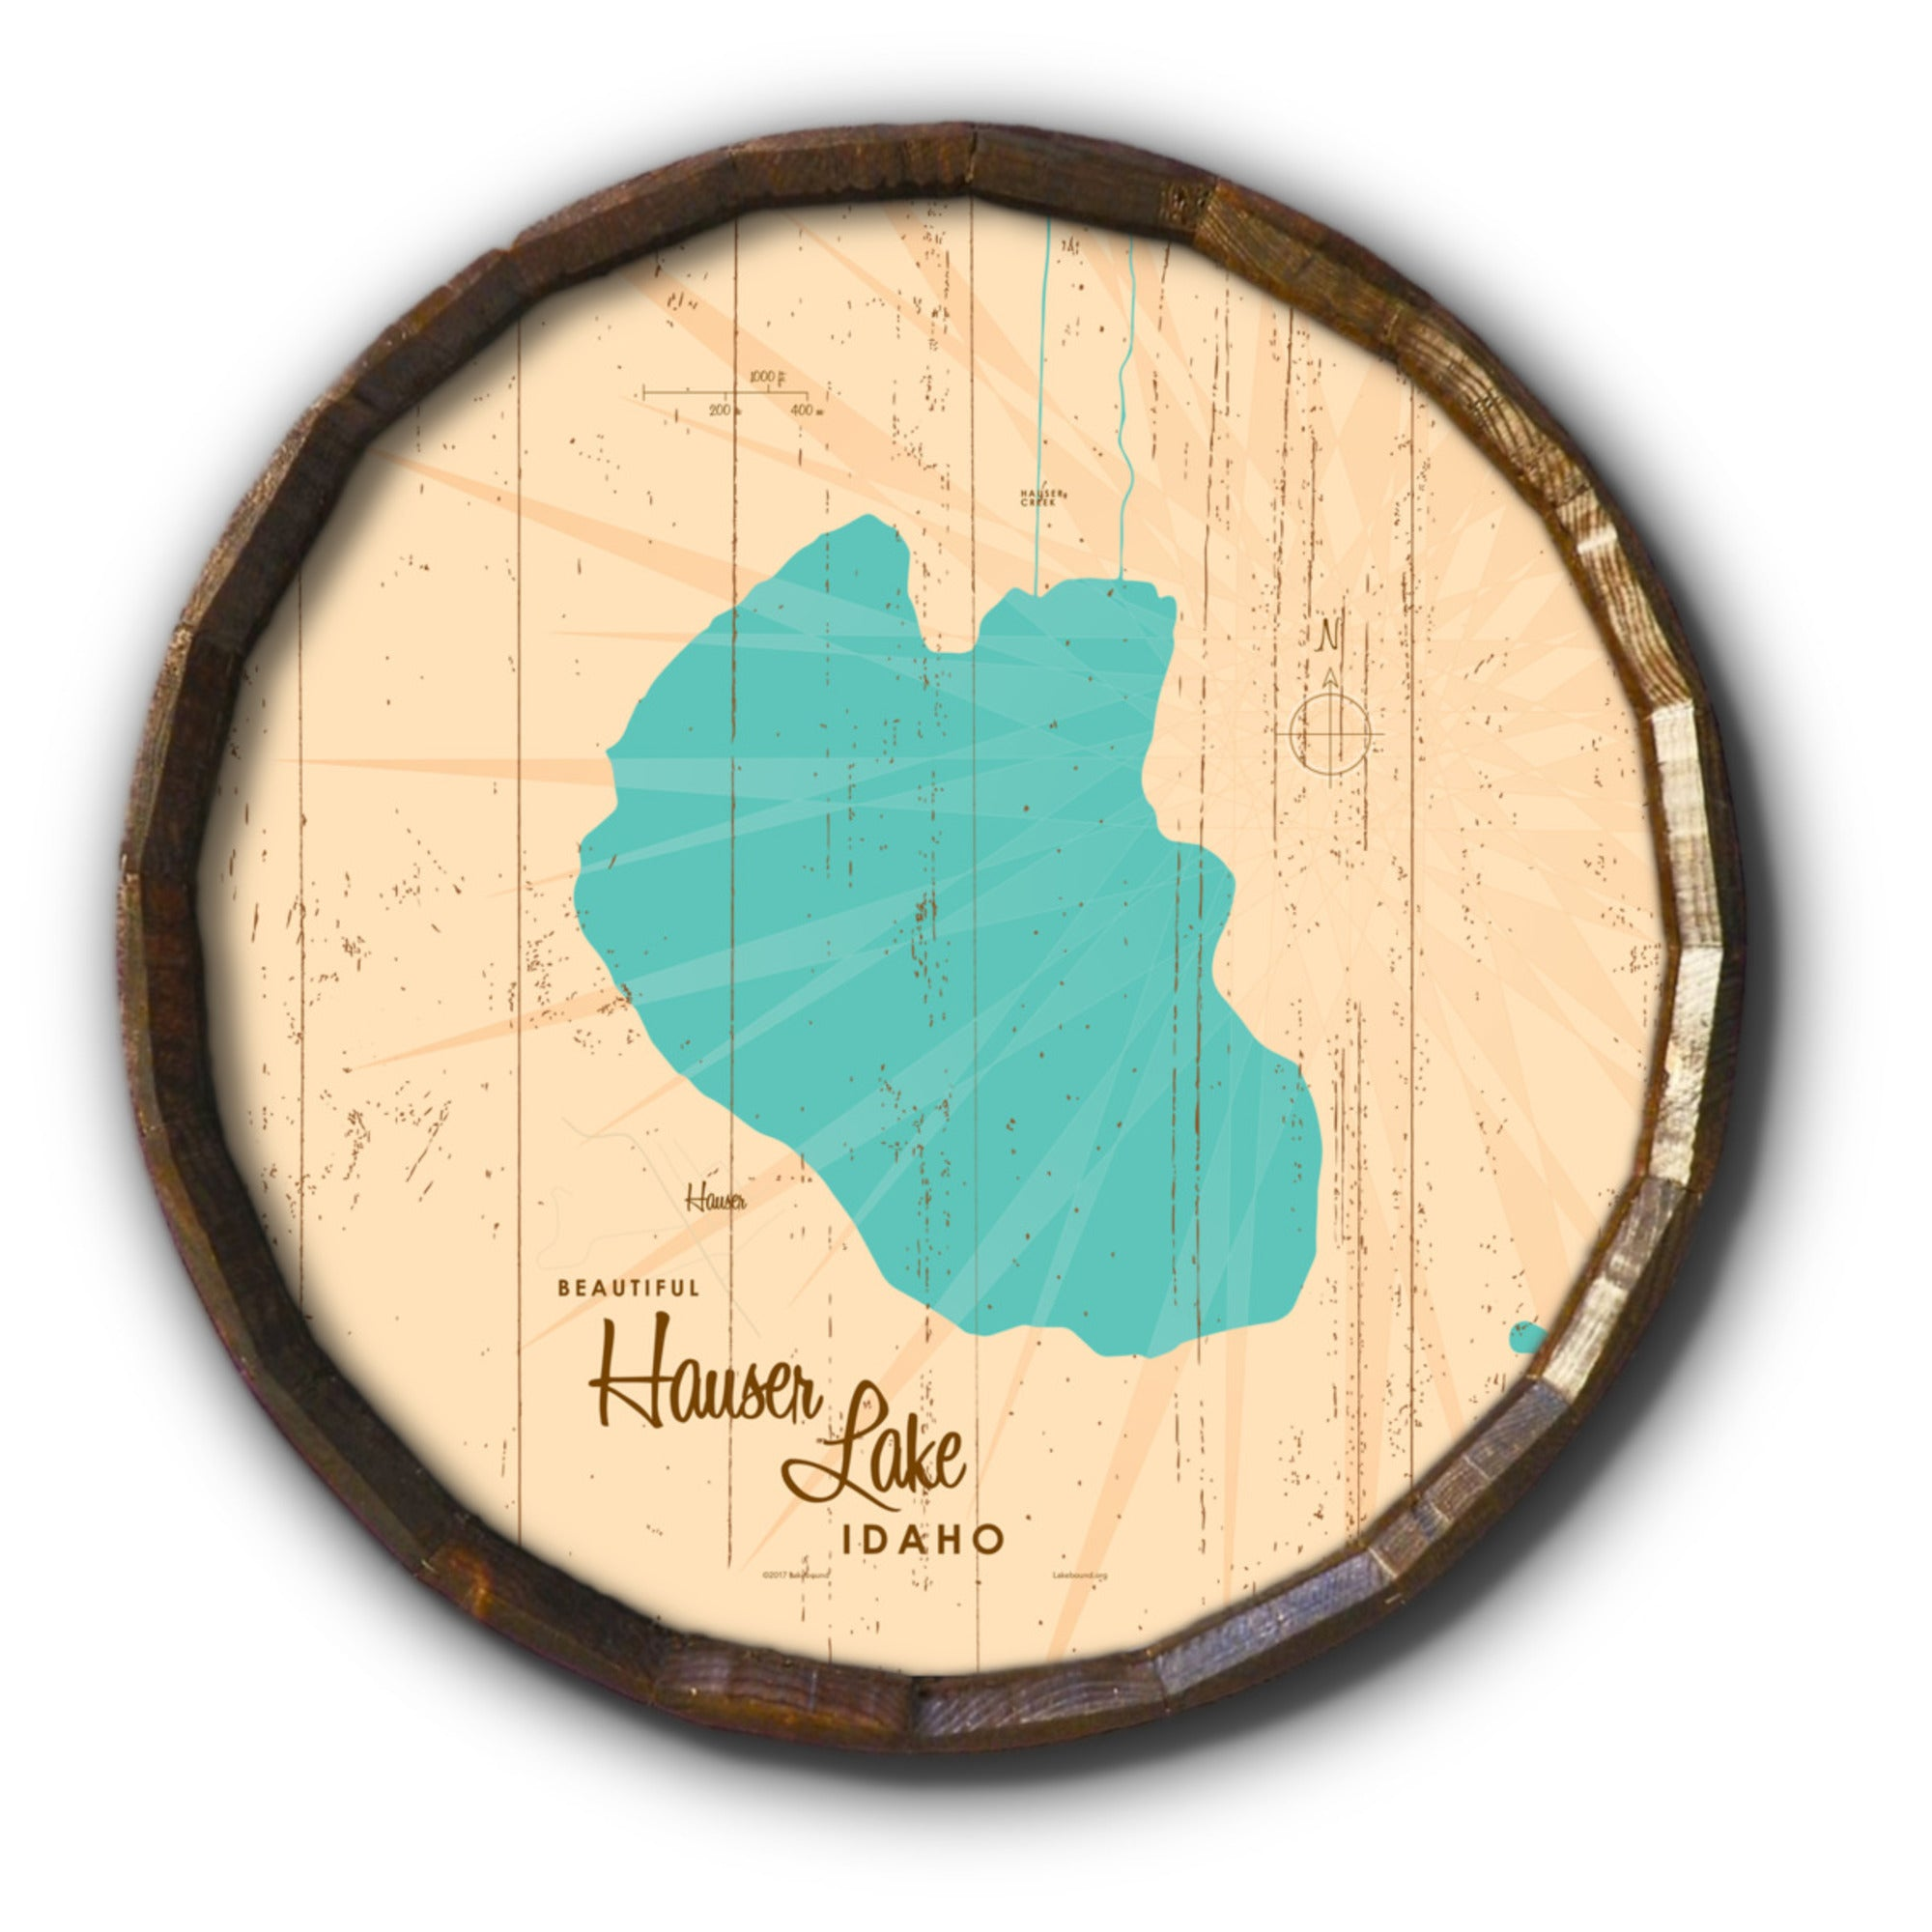 Hauser Lake Idaho, Rustic Barrel End Map Art